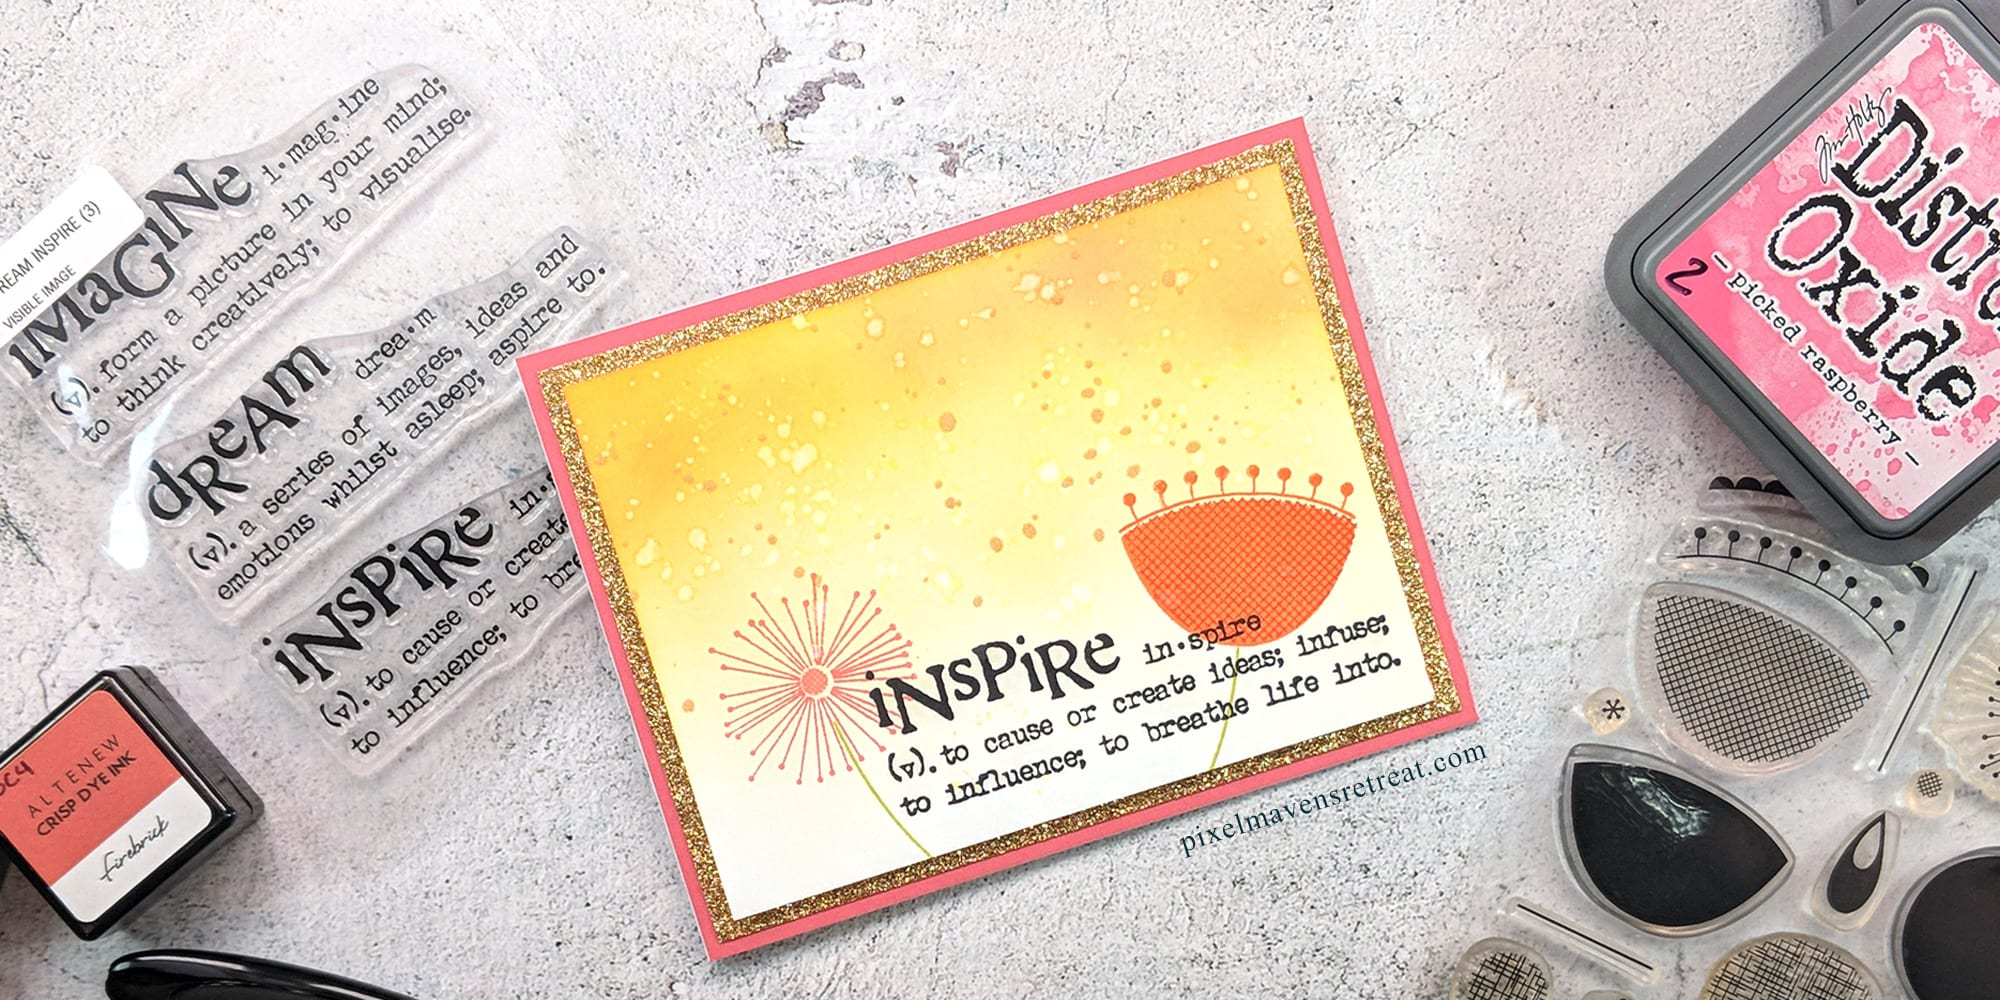 "Greeting card displayed on a stone desktop with crafting supplies. Card is pink, yellow and orange with Mid-Century Modern floral images and a sentiment reading ""inspire""."